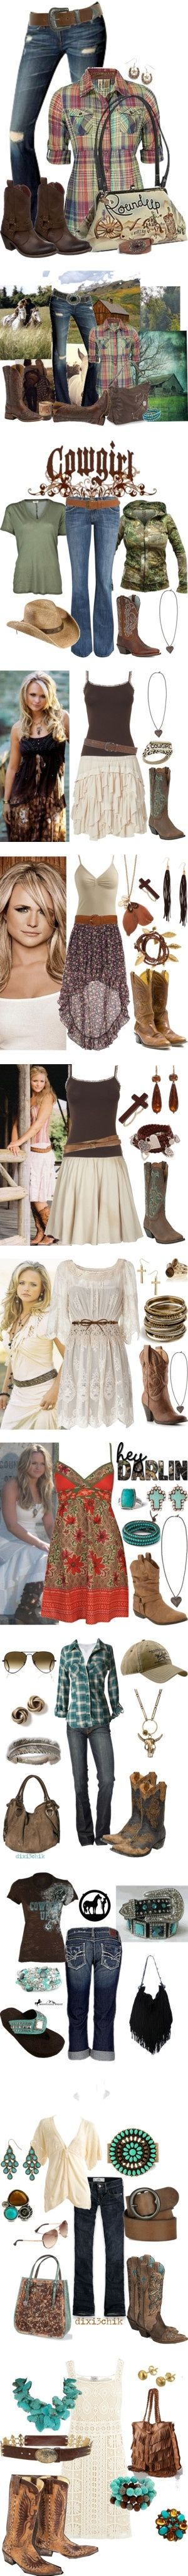 Country girl stuff by Felicia Berry- my little girl will love this